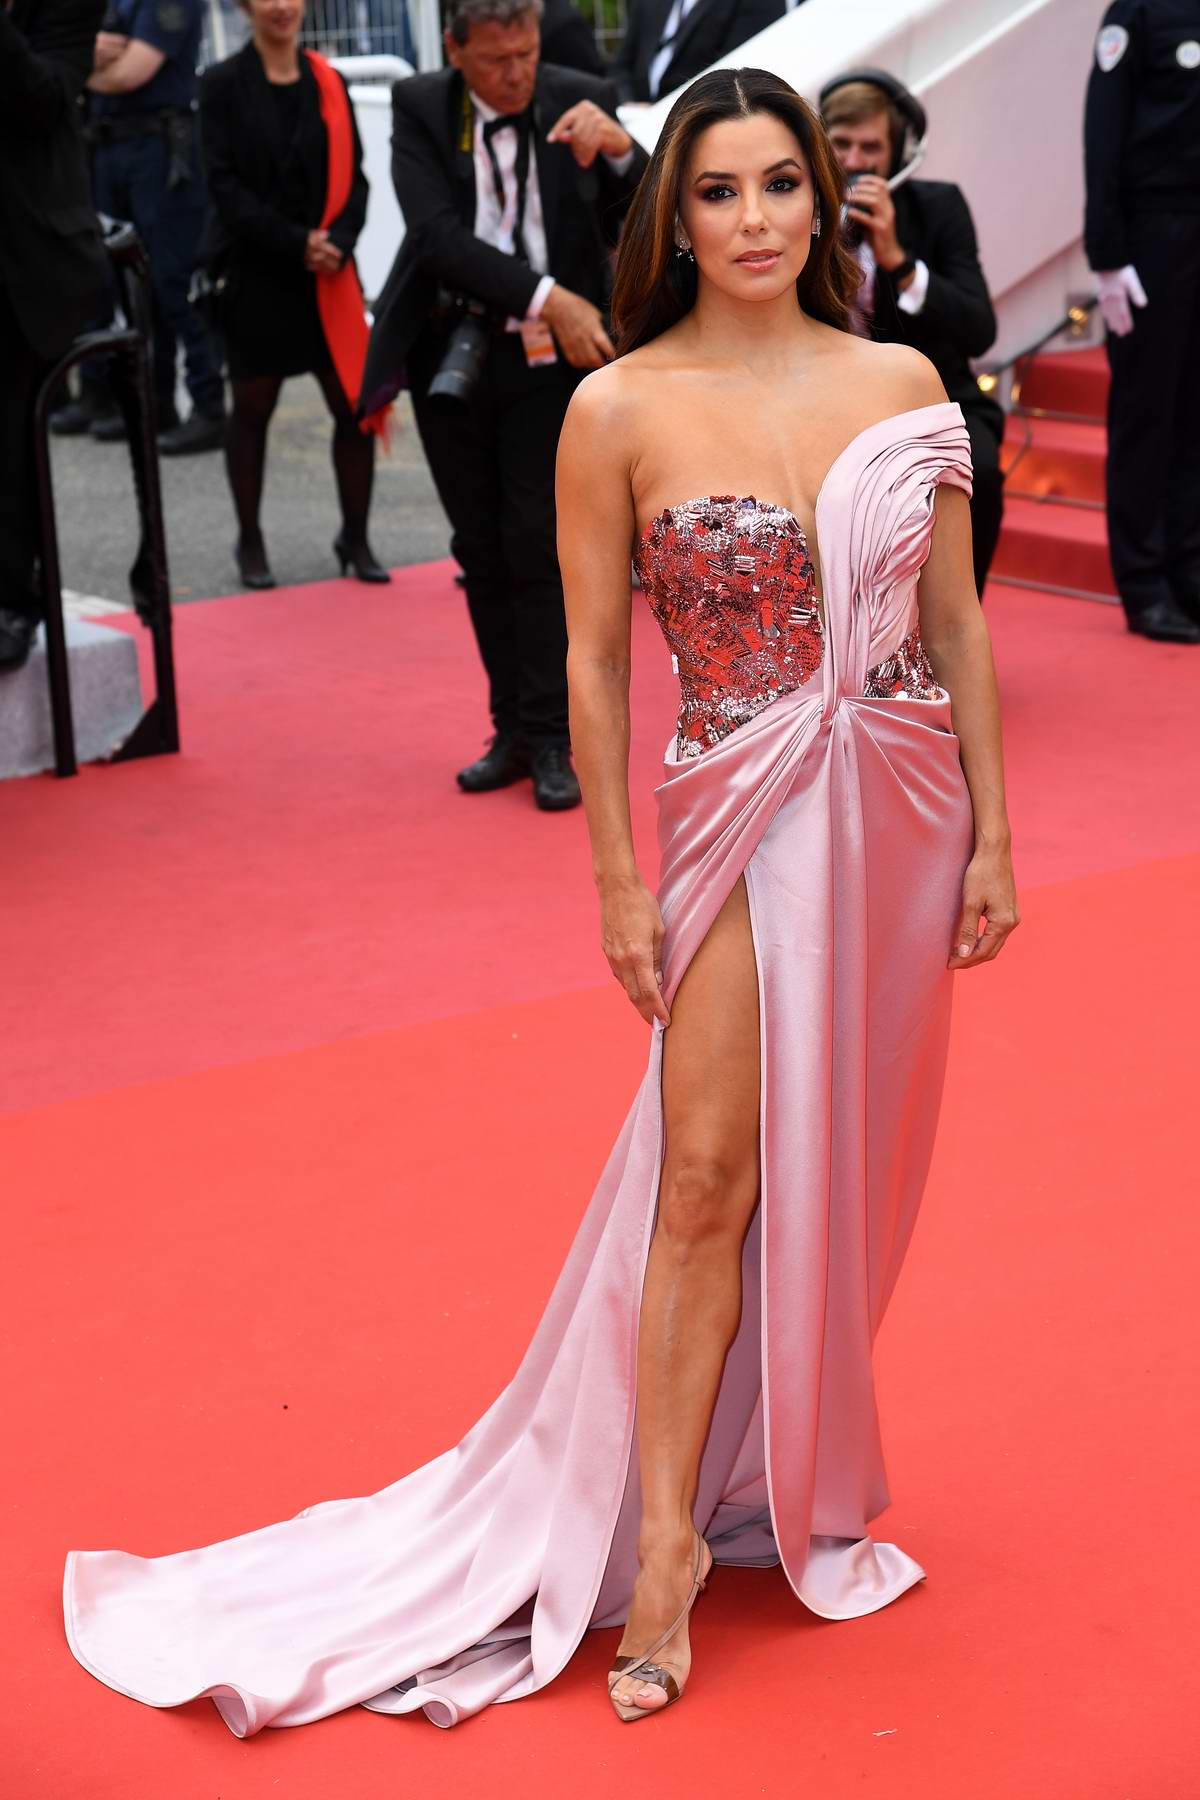 Eva Longoria attends 'The Dead Don't Die' Premiere during The 72nd annual Cannes Film Festival in Cannes, France